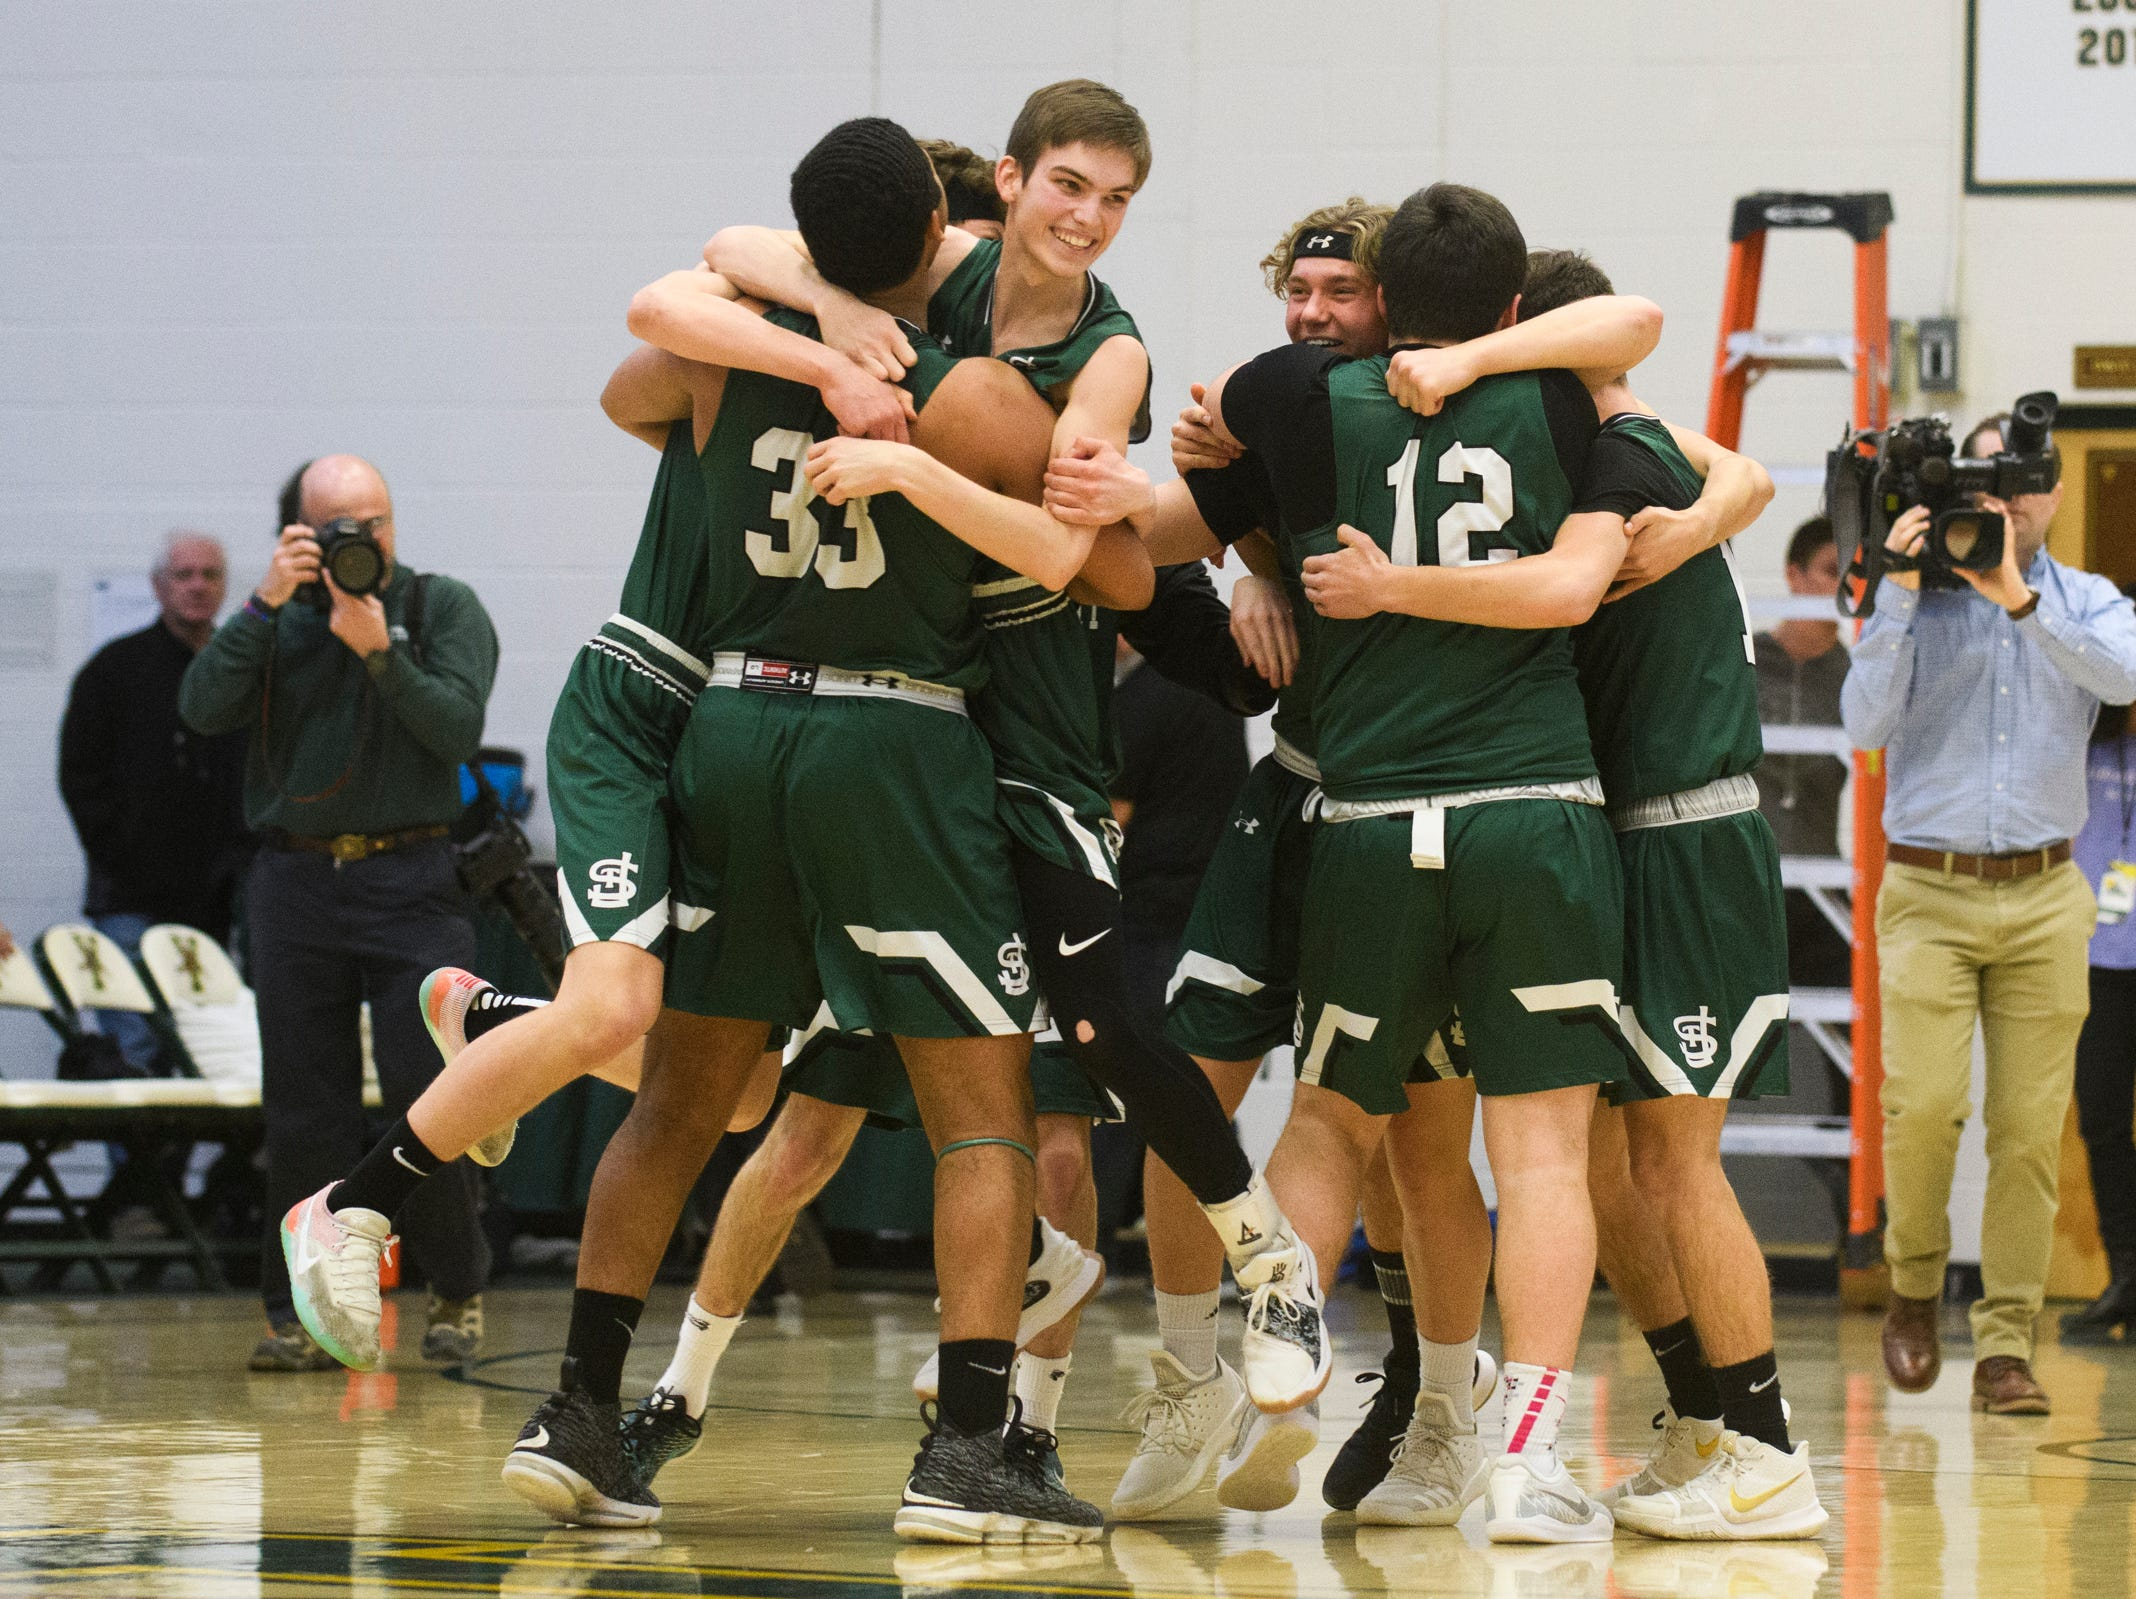 St. Johnsbury celebrates the championship during the DI boys basketball championship game between the St. Johnsbury Hilltoppers and the Rutland Raiders at Patrick Gym on Sunday afternoon March 17, 2019 in Burlington, Vermont.